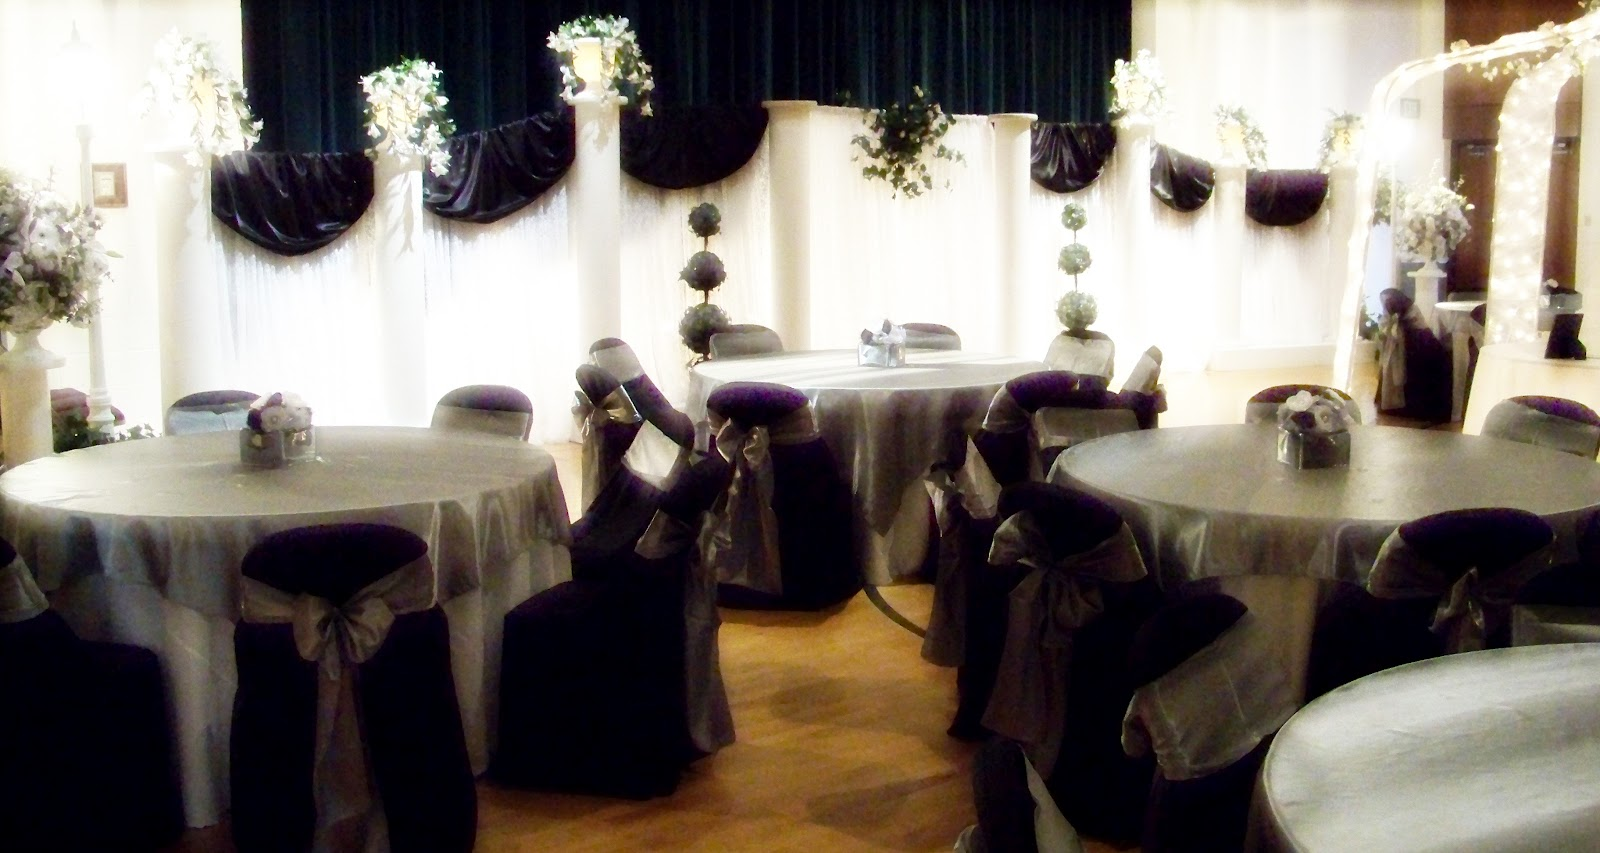 Find the best selection of cheap black white silver wedding centerpieces in bulk here at fastdownloadecoqy.cf Including feather plumes wedding centerpieces and wedding centerpieces green feathers at wholesale prices from black white silver wedding centerpieces manufacturers. Source discount and high quality products in hundreds of categories wholesale direct from China.